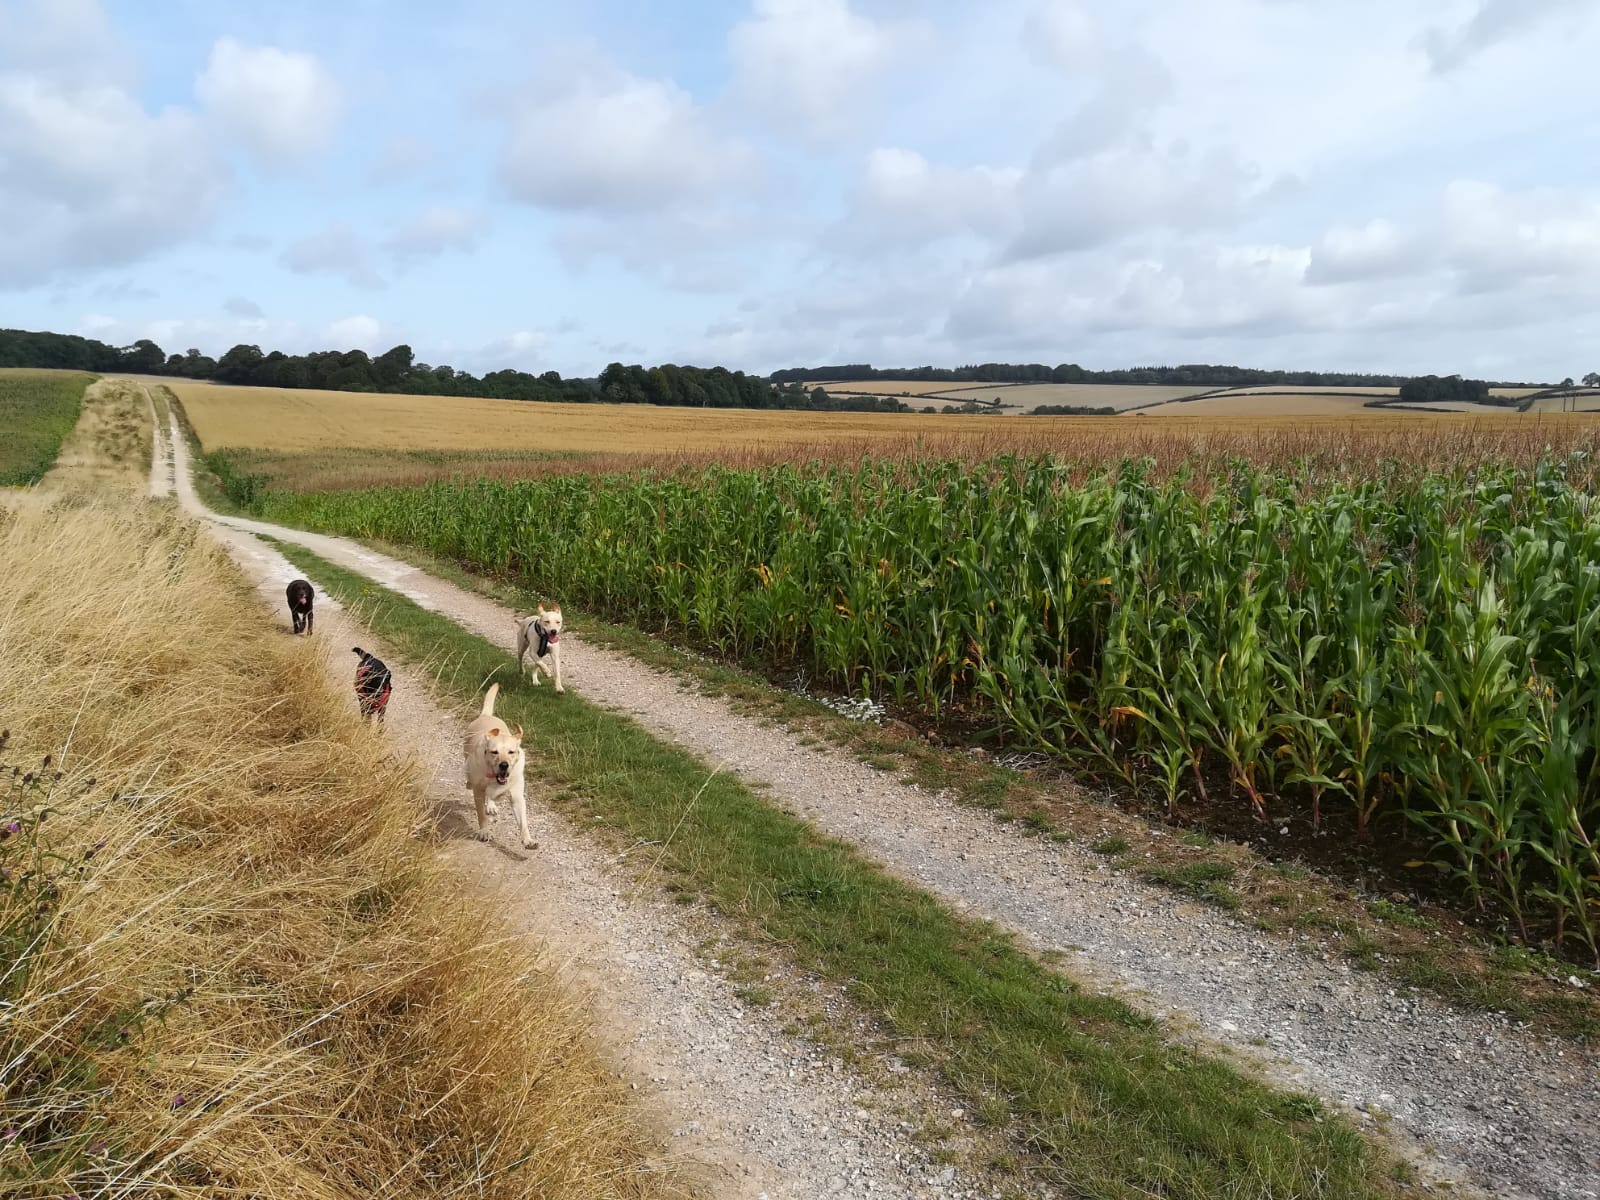 Dogs running through a field on a track